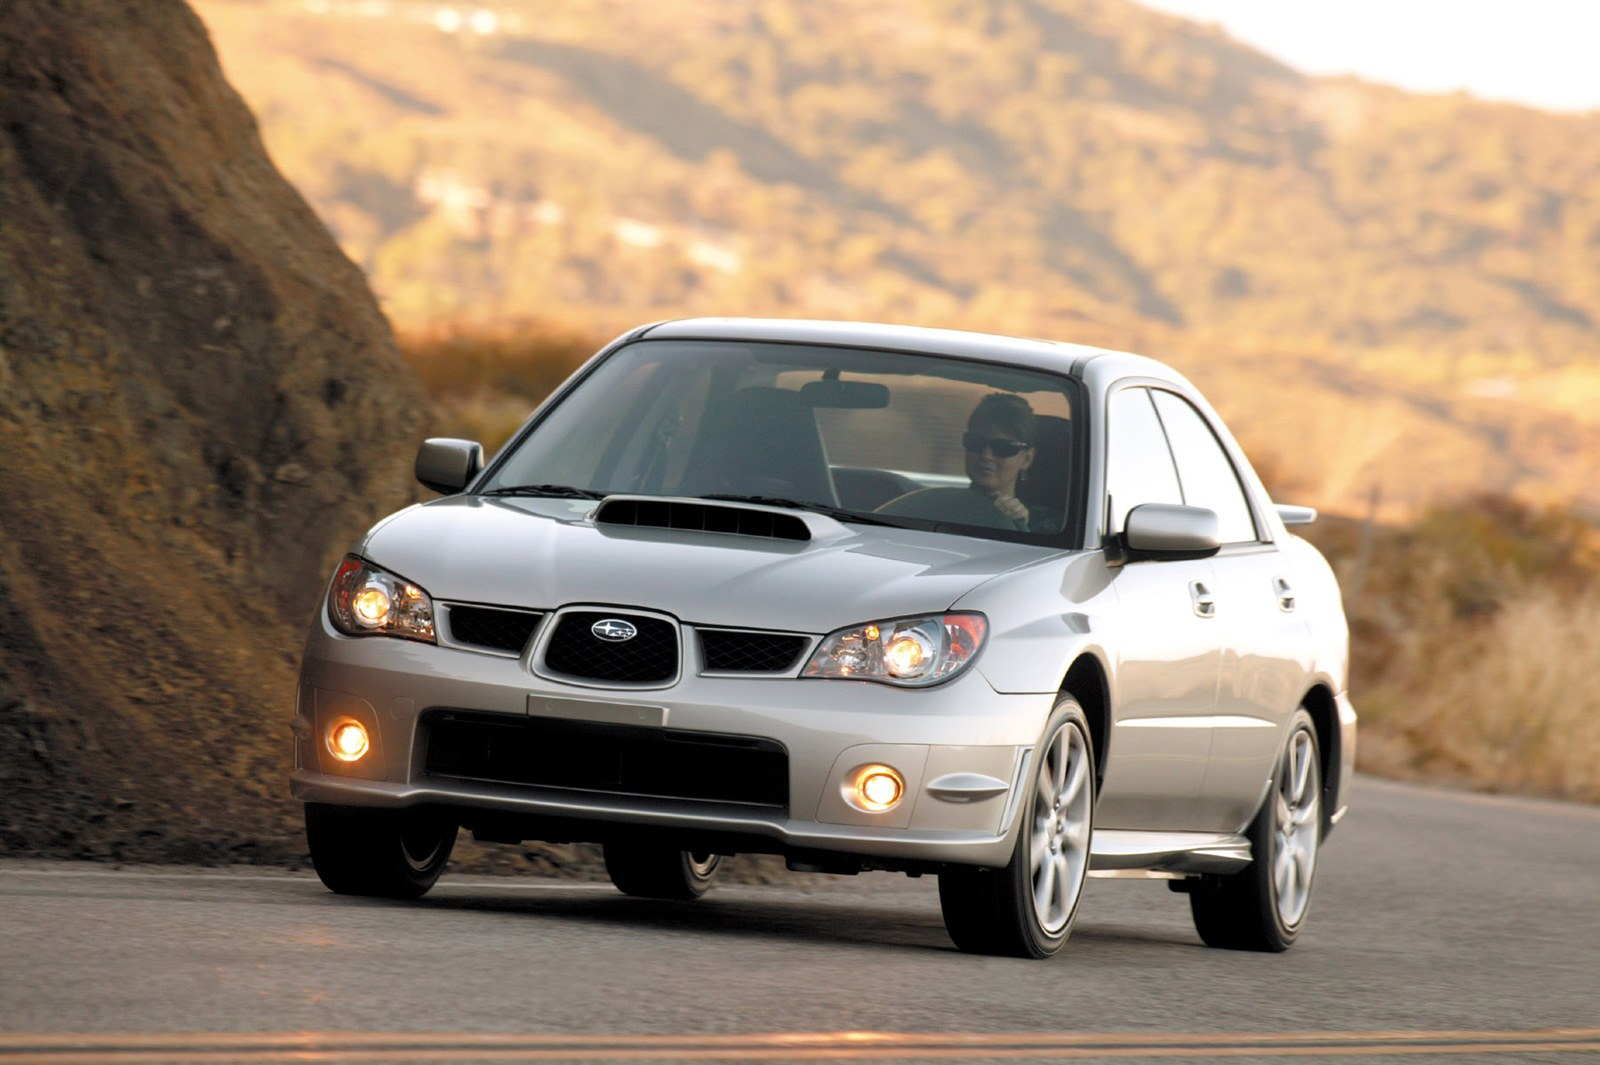 Good Looking Cars Under 10k >> Top 10 Best Used Sports Cars Under $10K » AutoGuide.com News